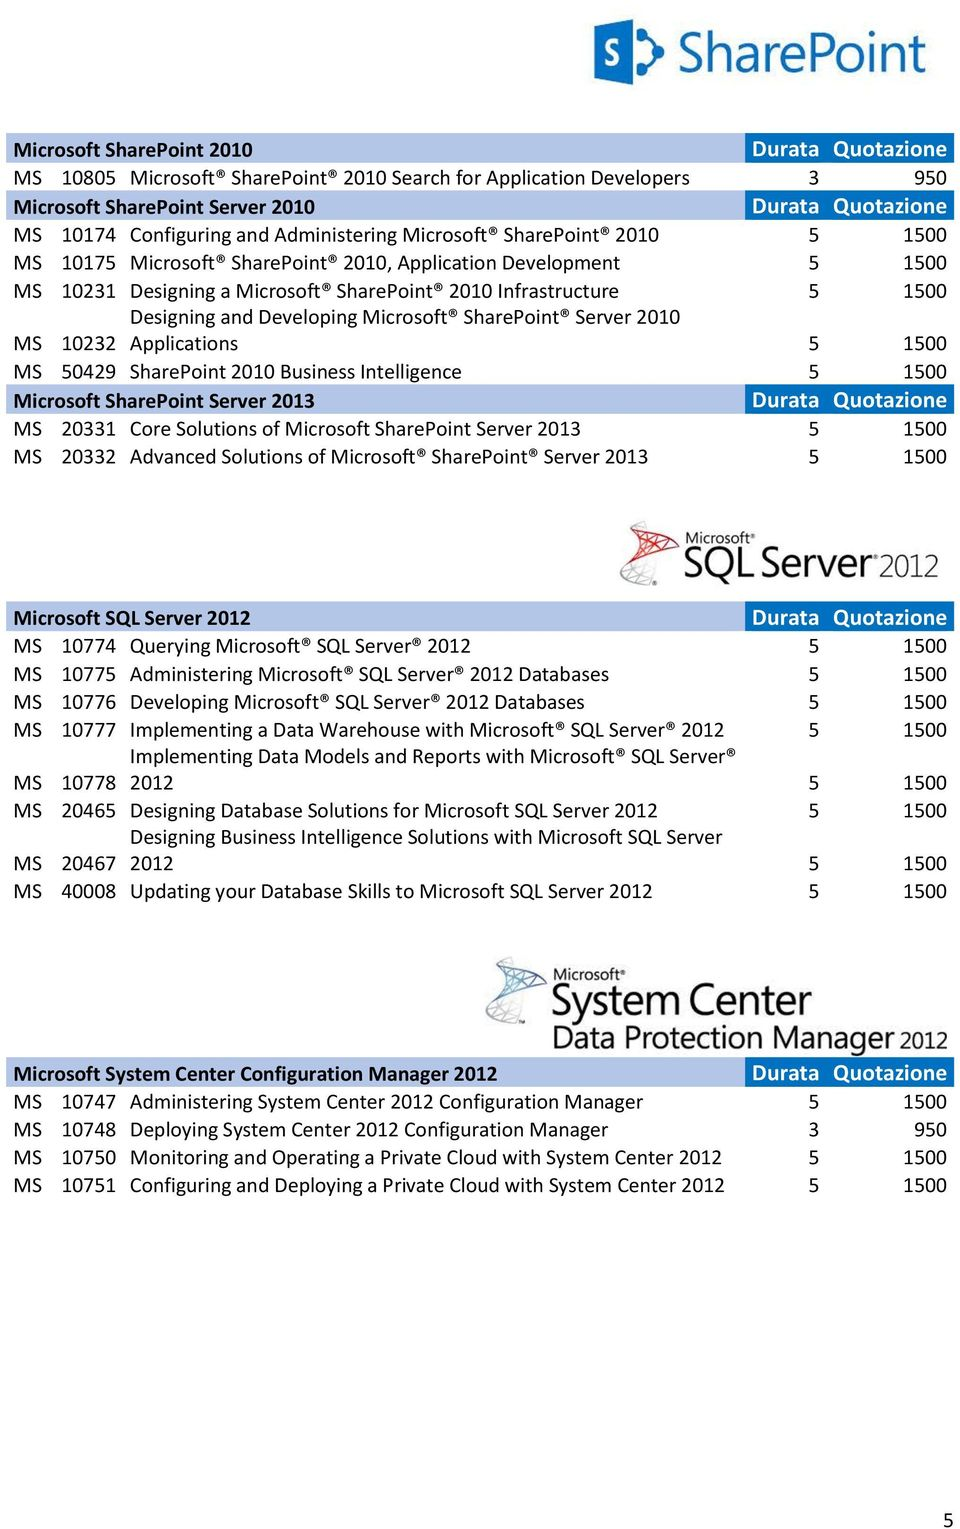 Applications 5 1500 50429 SharePoint 2010 Business Intelligence 5 1500 Microsoft SharePoint Server 2013 20331 Core Solutions of Microsoft SharePoint Server 2013 5 1500 20332 Advanced Solutions of